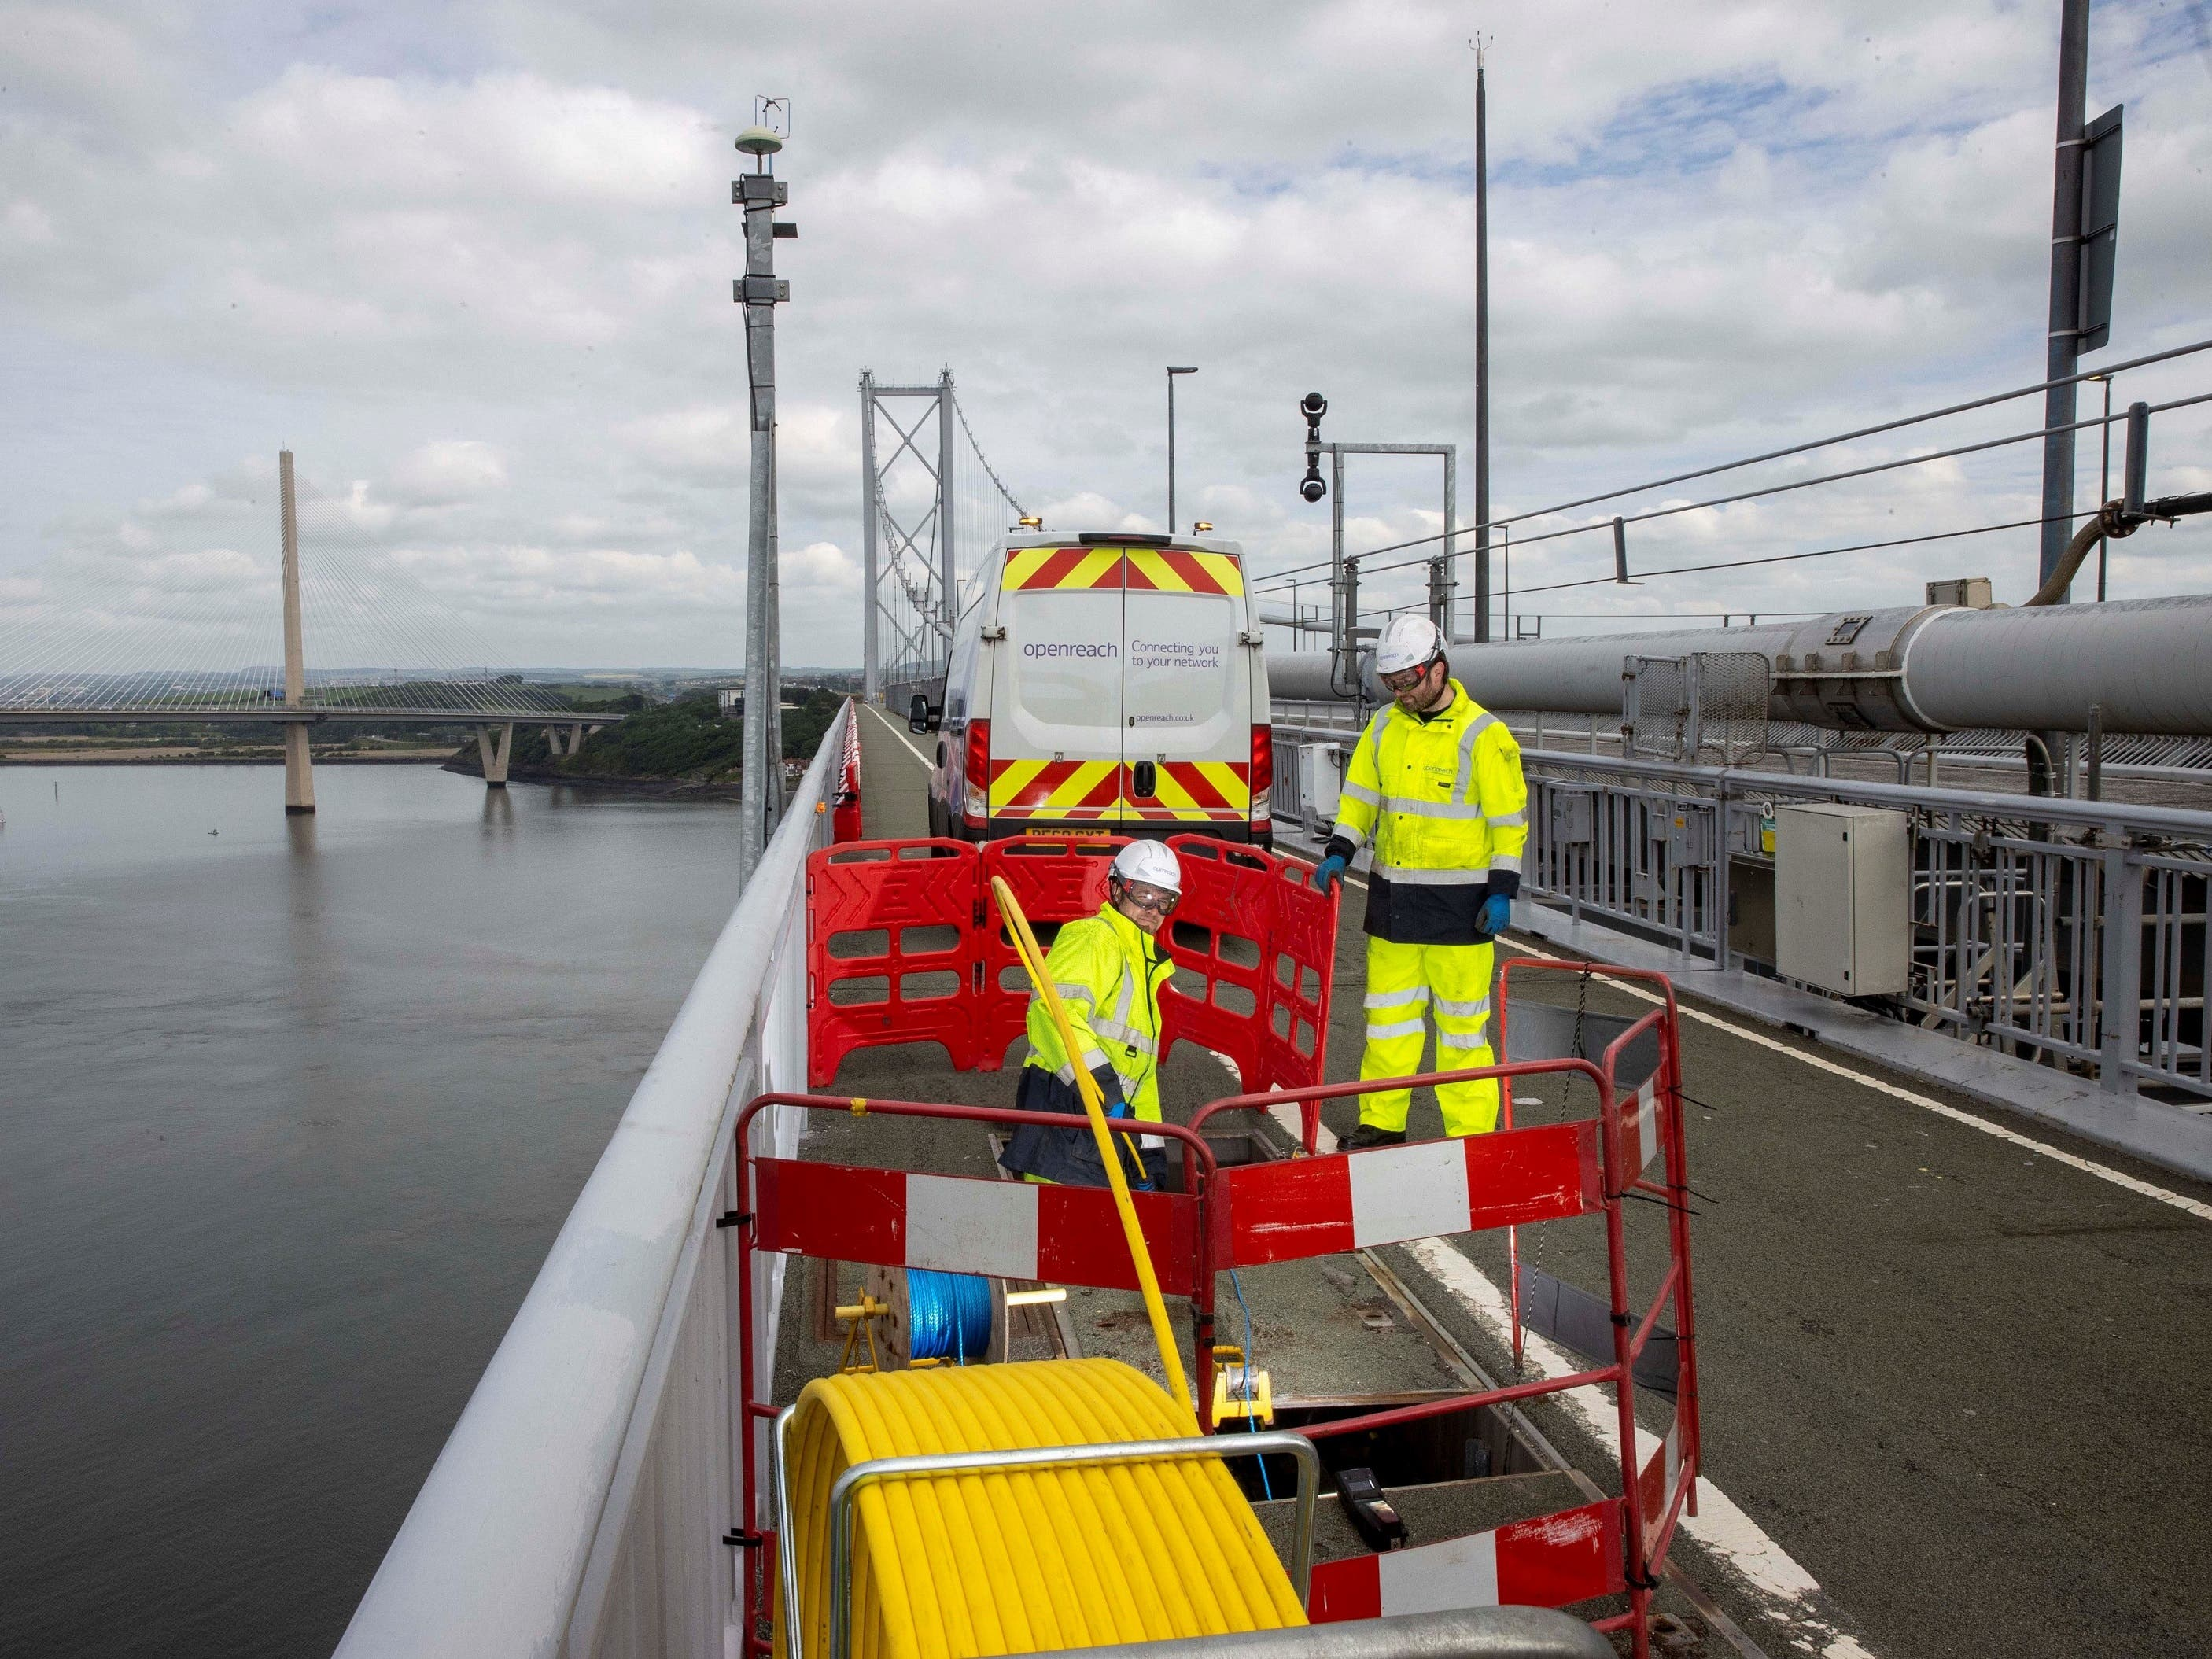 Openreach workers on the Forth Road Bridge